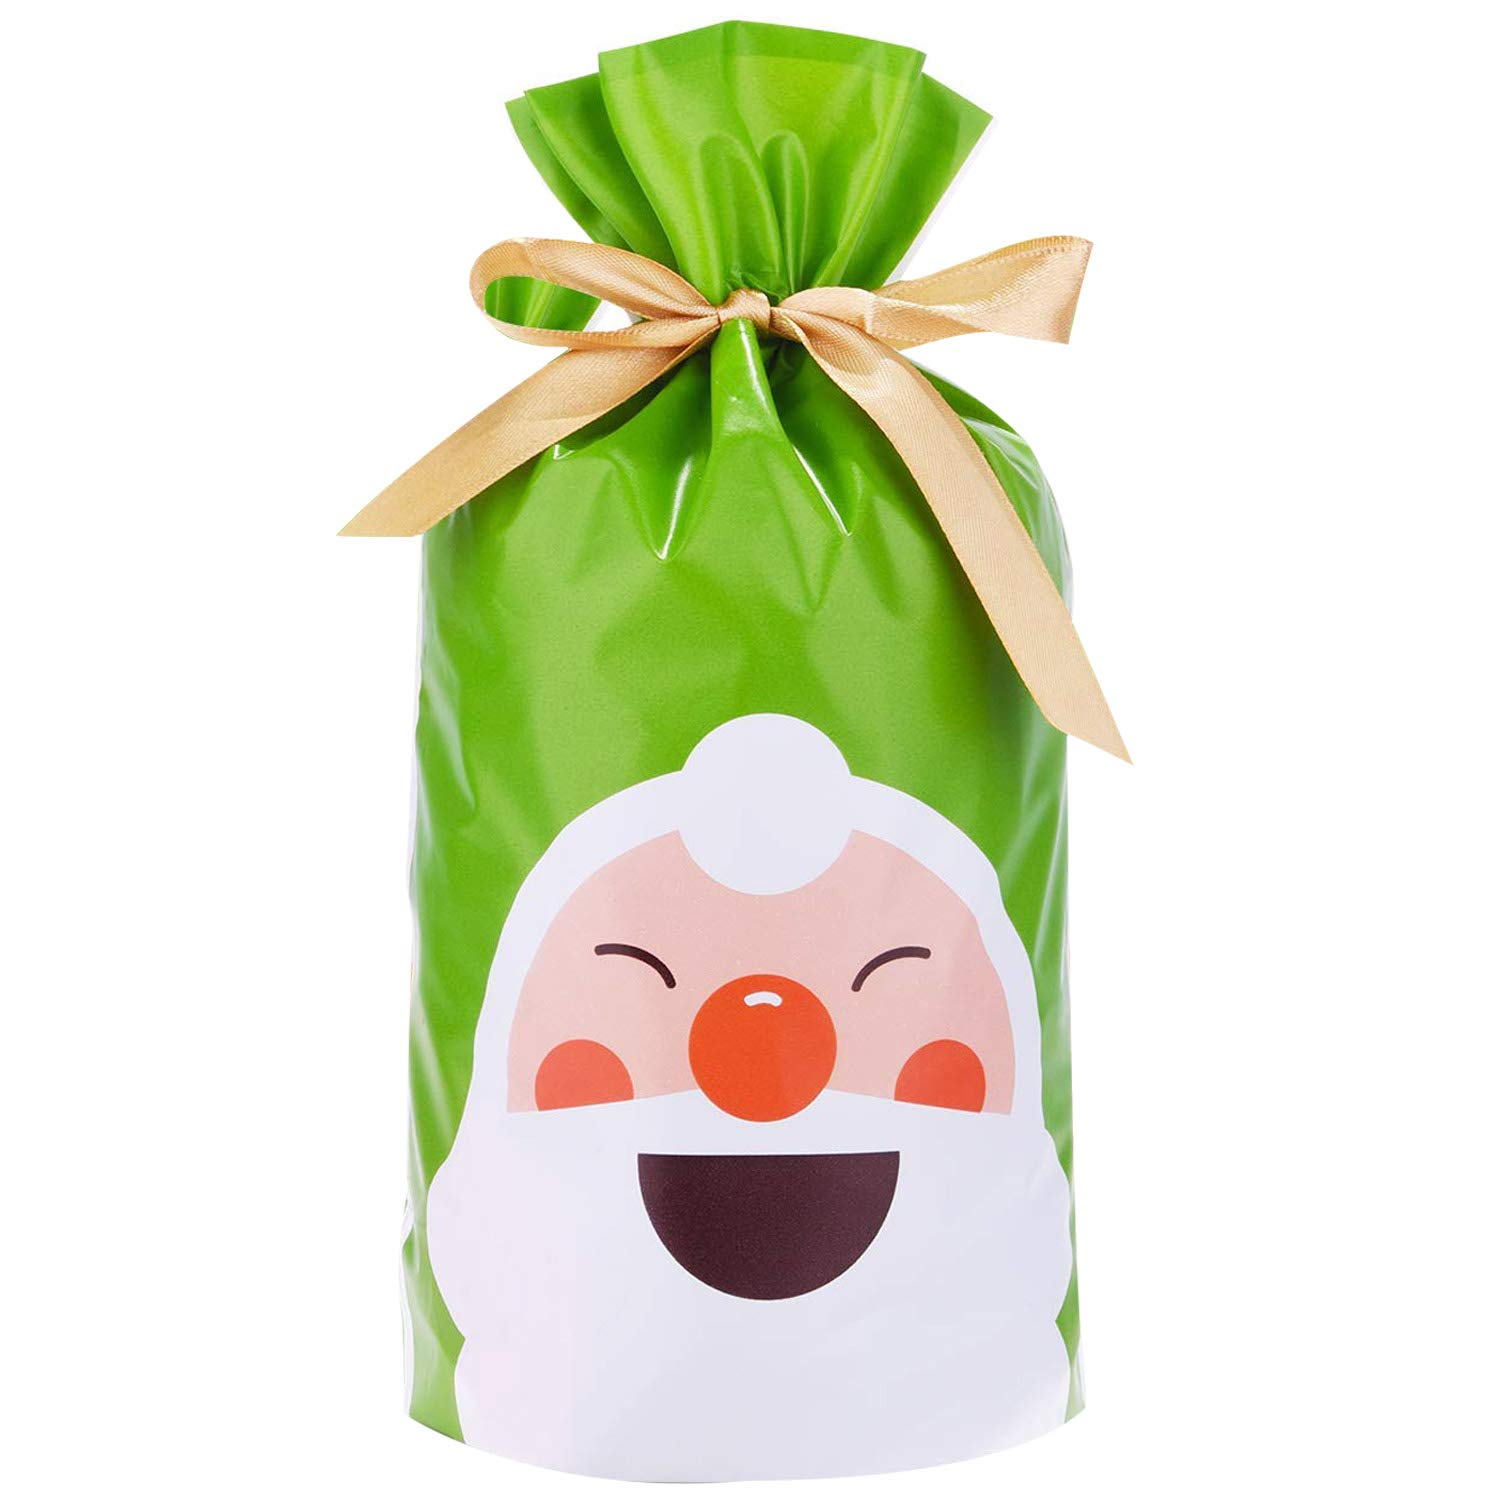 Gift Bags Christmas Paty Favor Bags Treat Bags Heart Santa Deer for Birthday, Christmas Holidays 50 PCS by 17mey